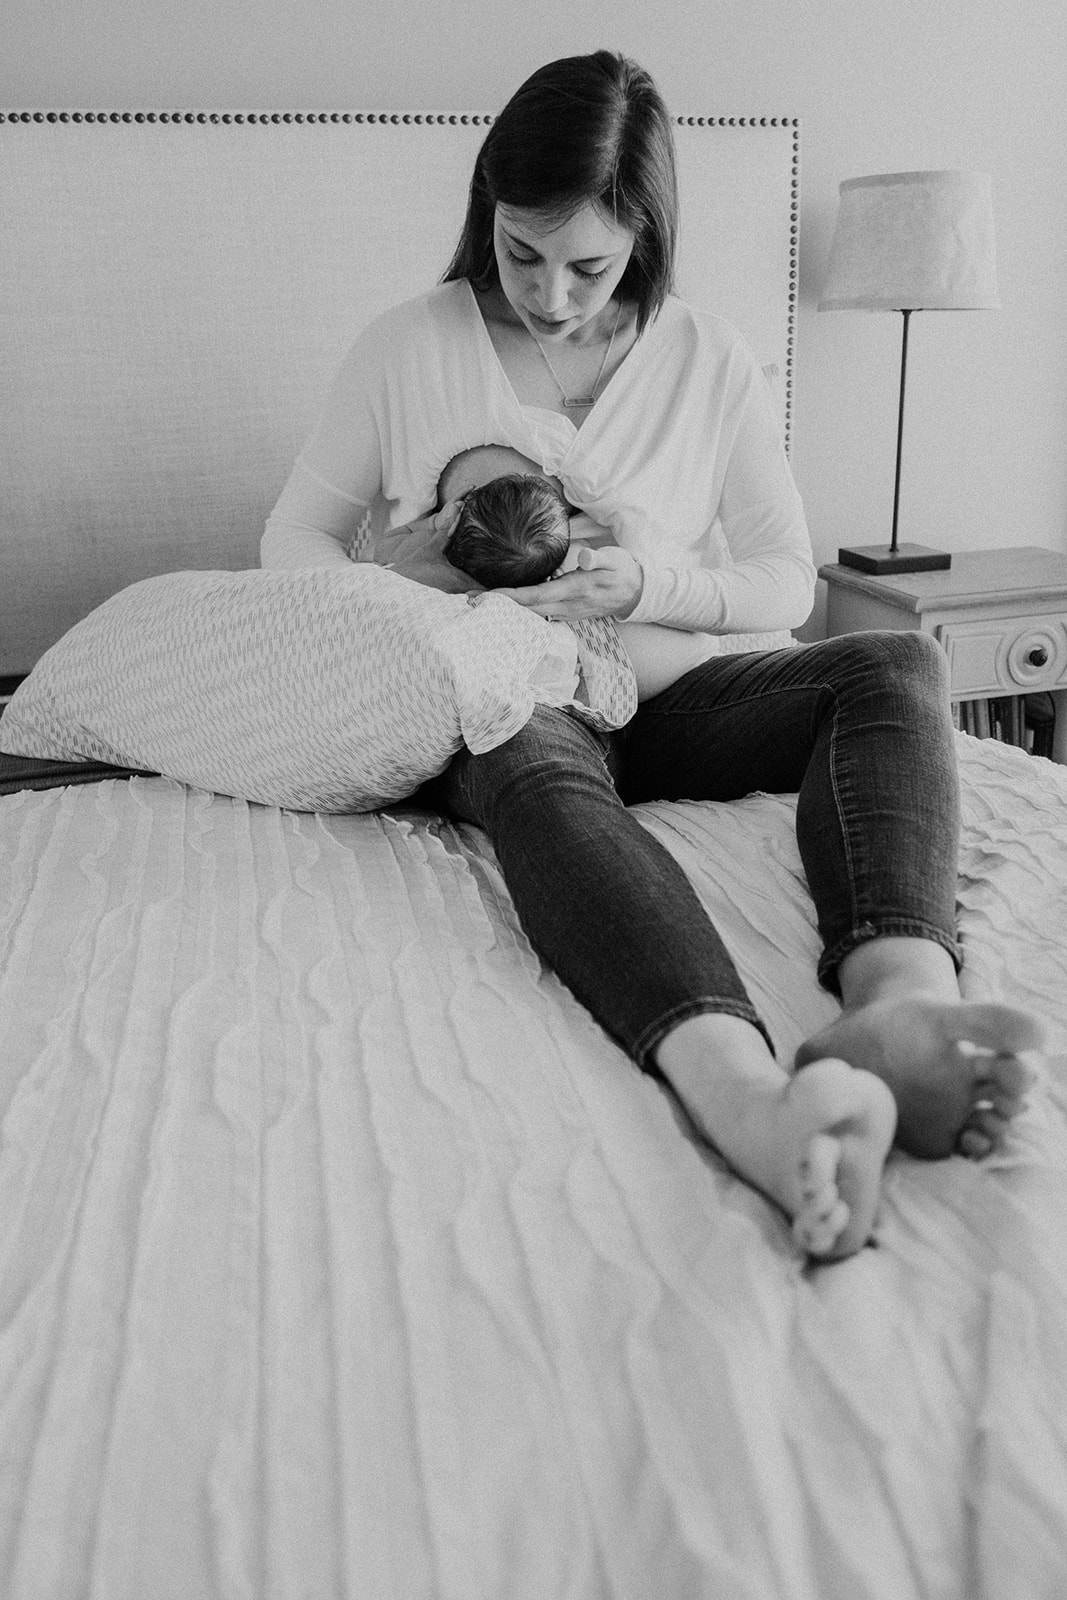 A mother nurses her newborn son on her bed during an in-home family photography session.